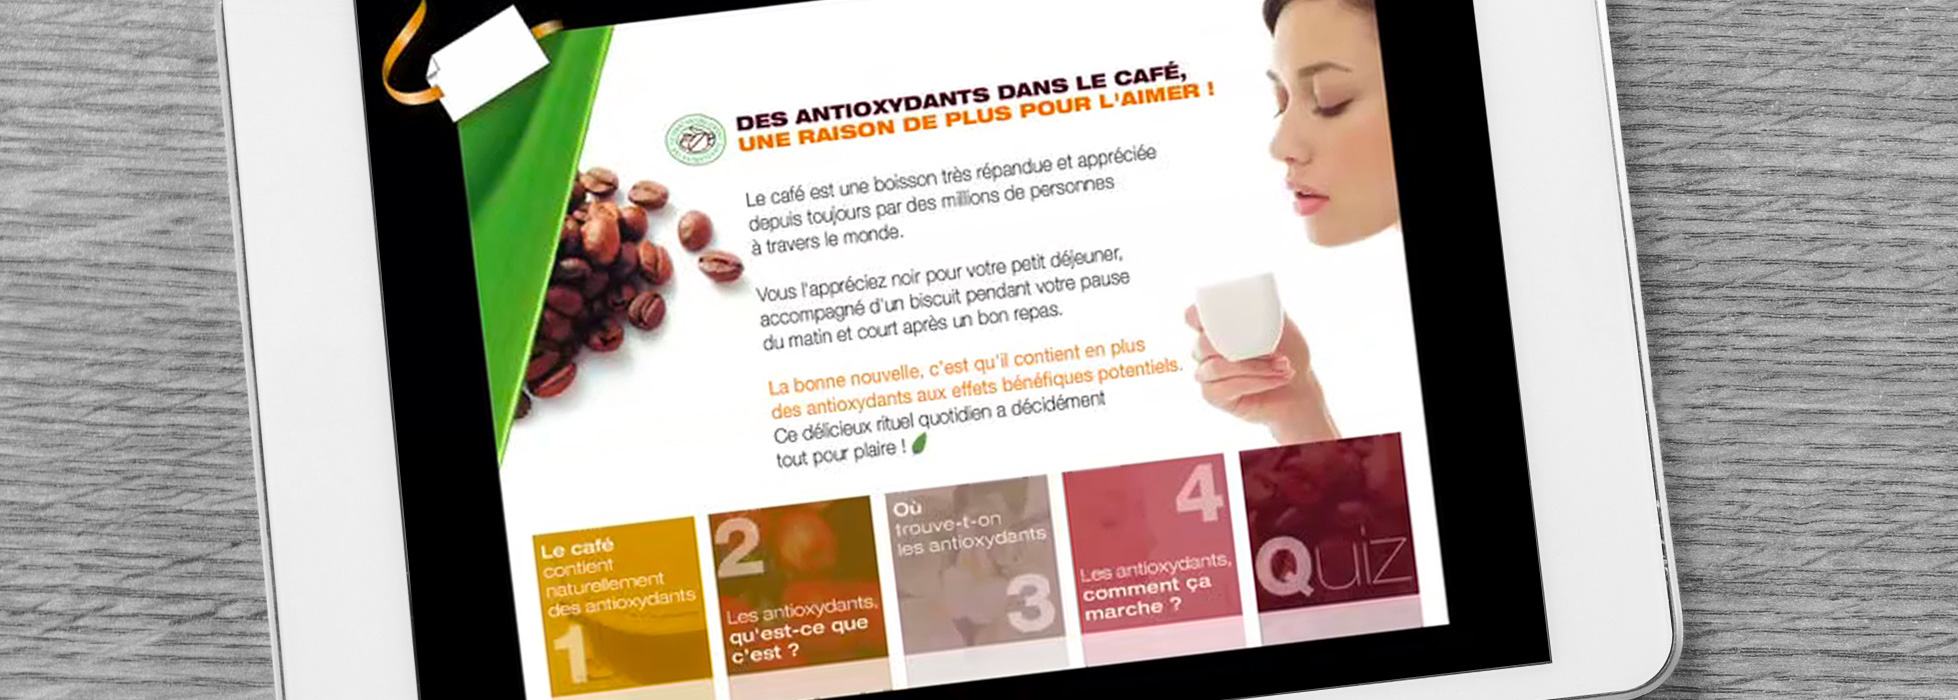 Café & Antioxydants